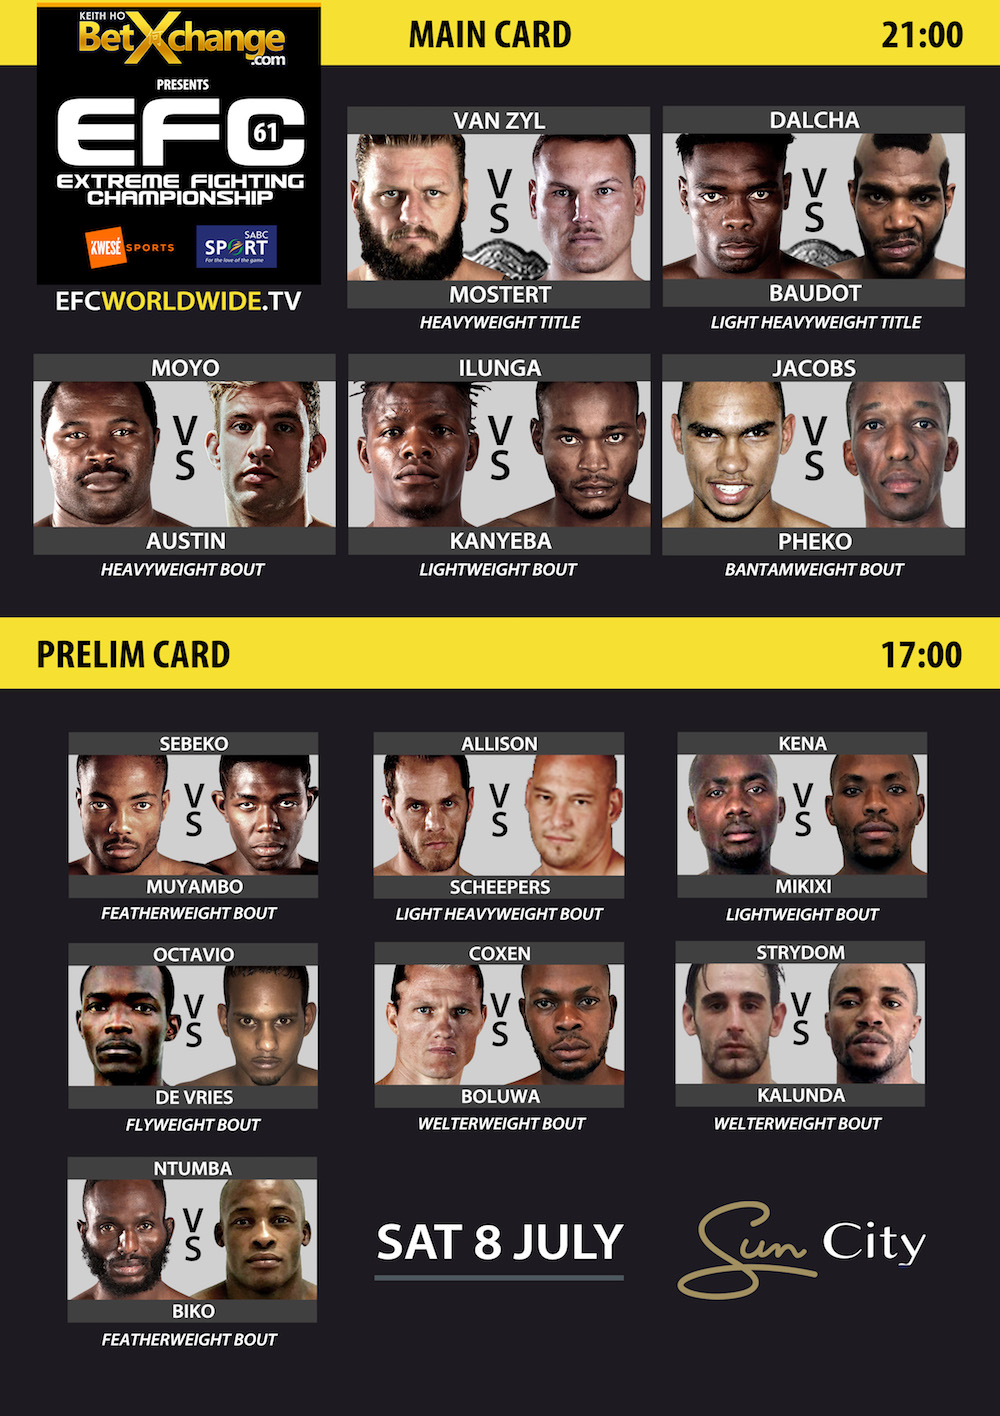 Mixed Martial Arts action returns to Sun City for EFC 61